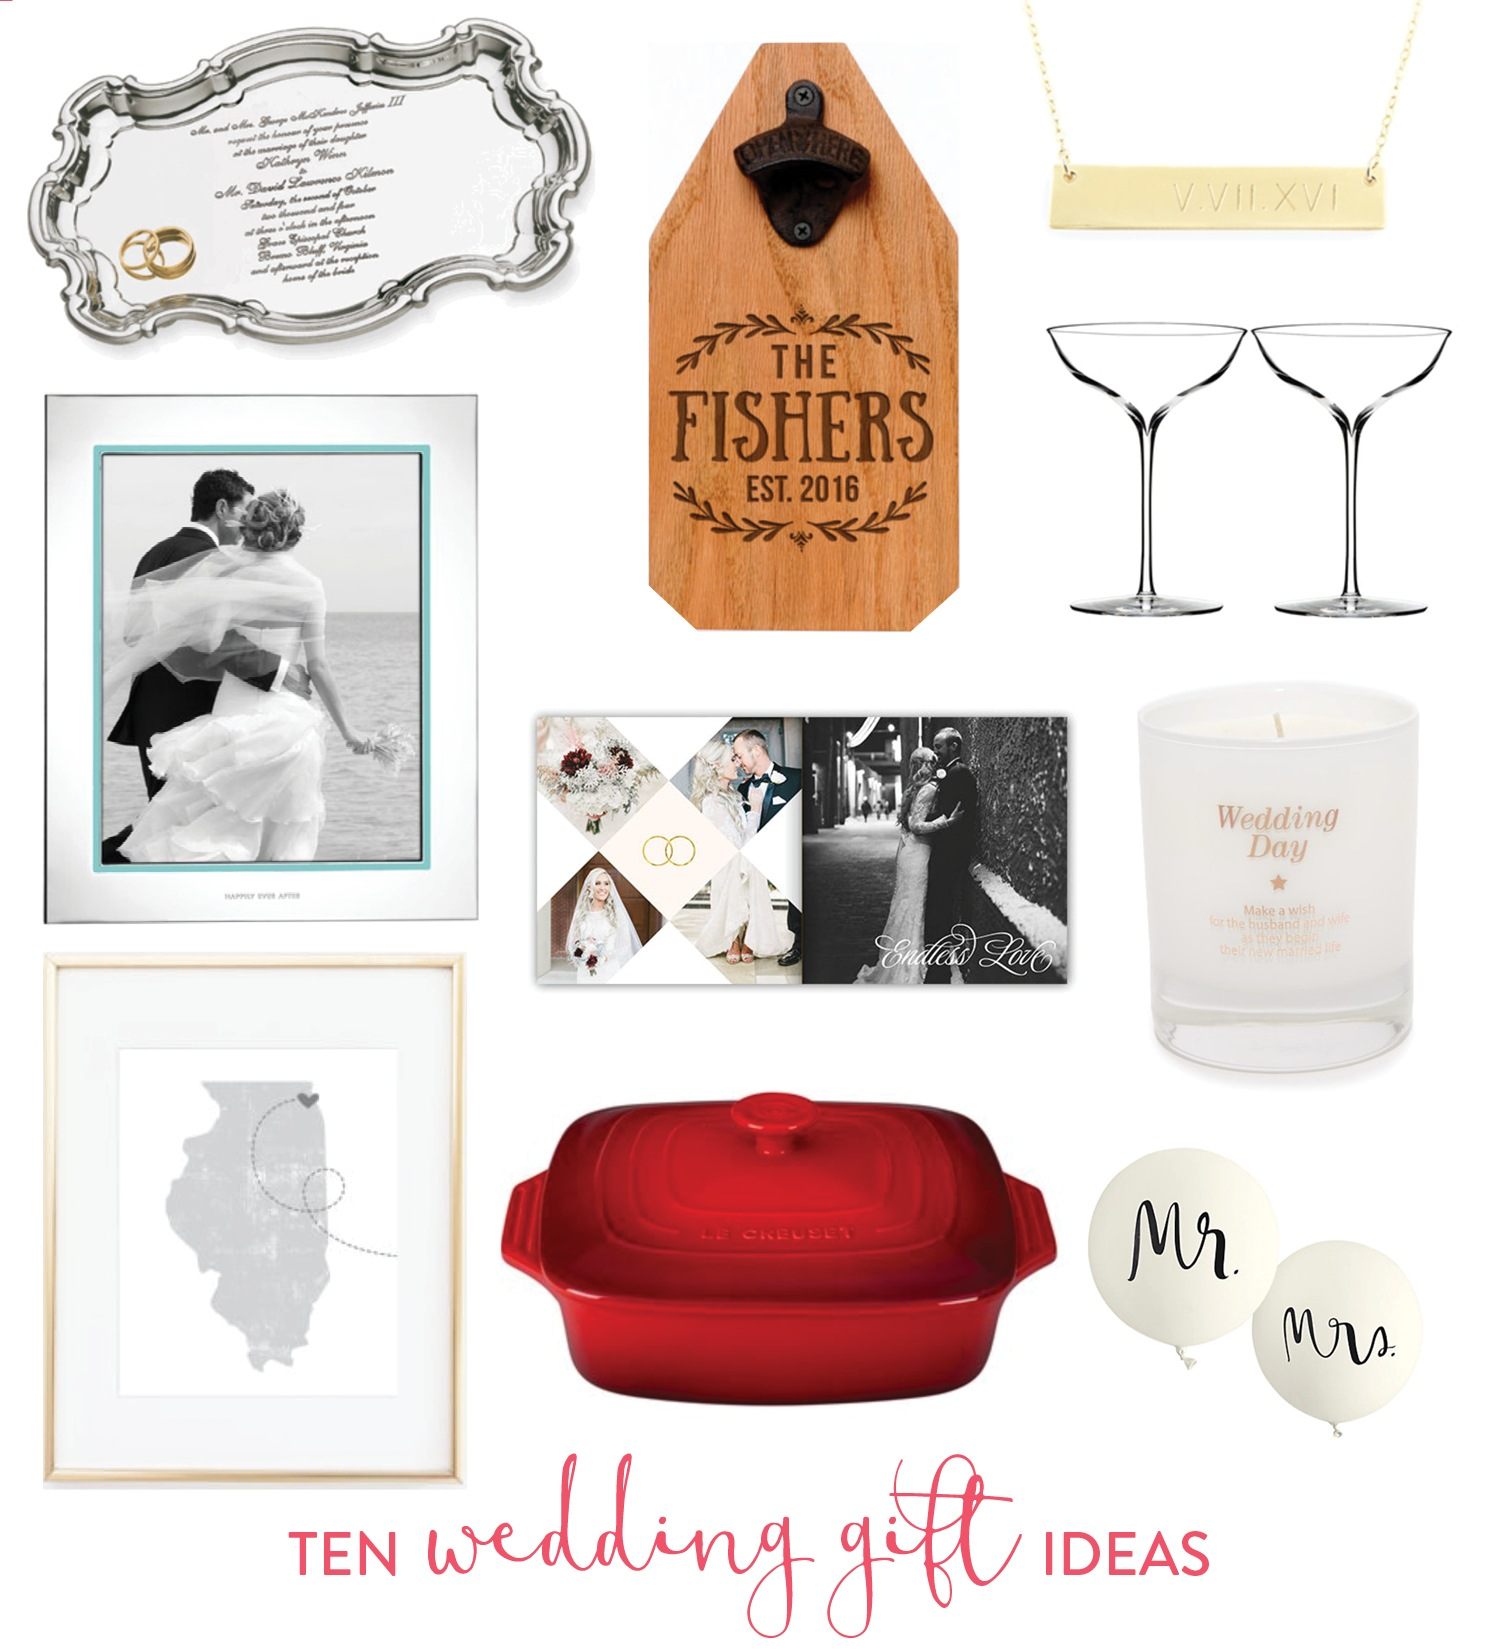 10 Wedding Gift Ideas